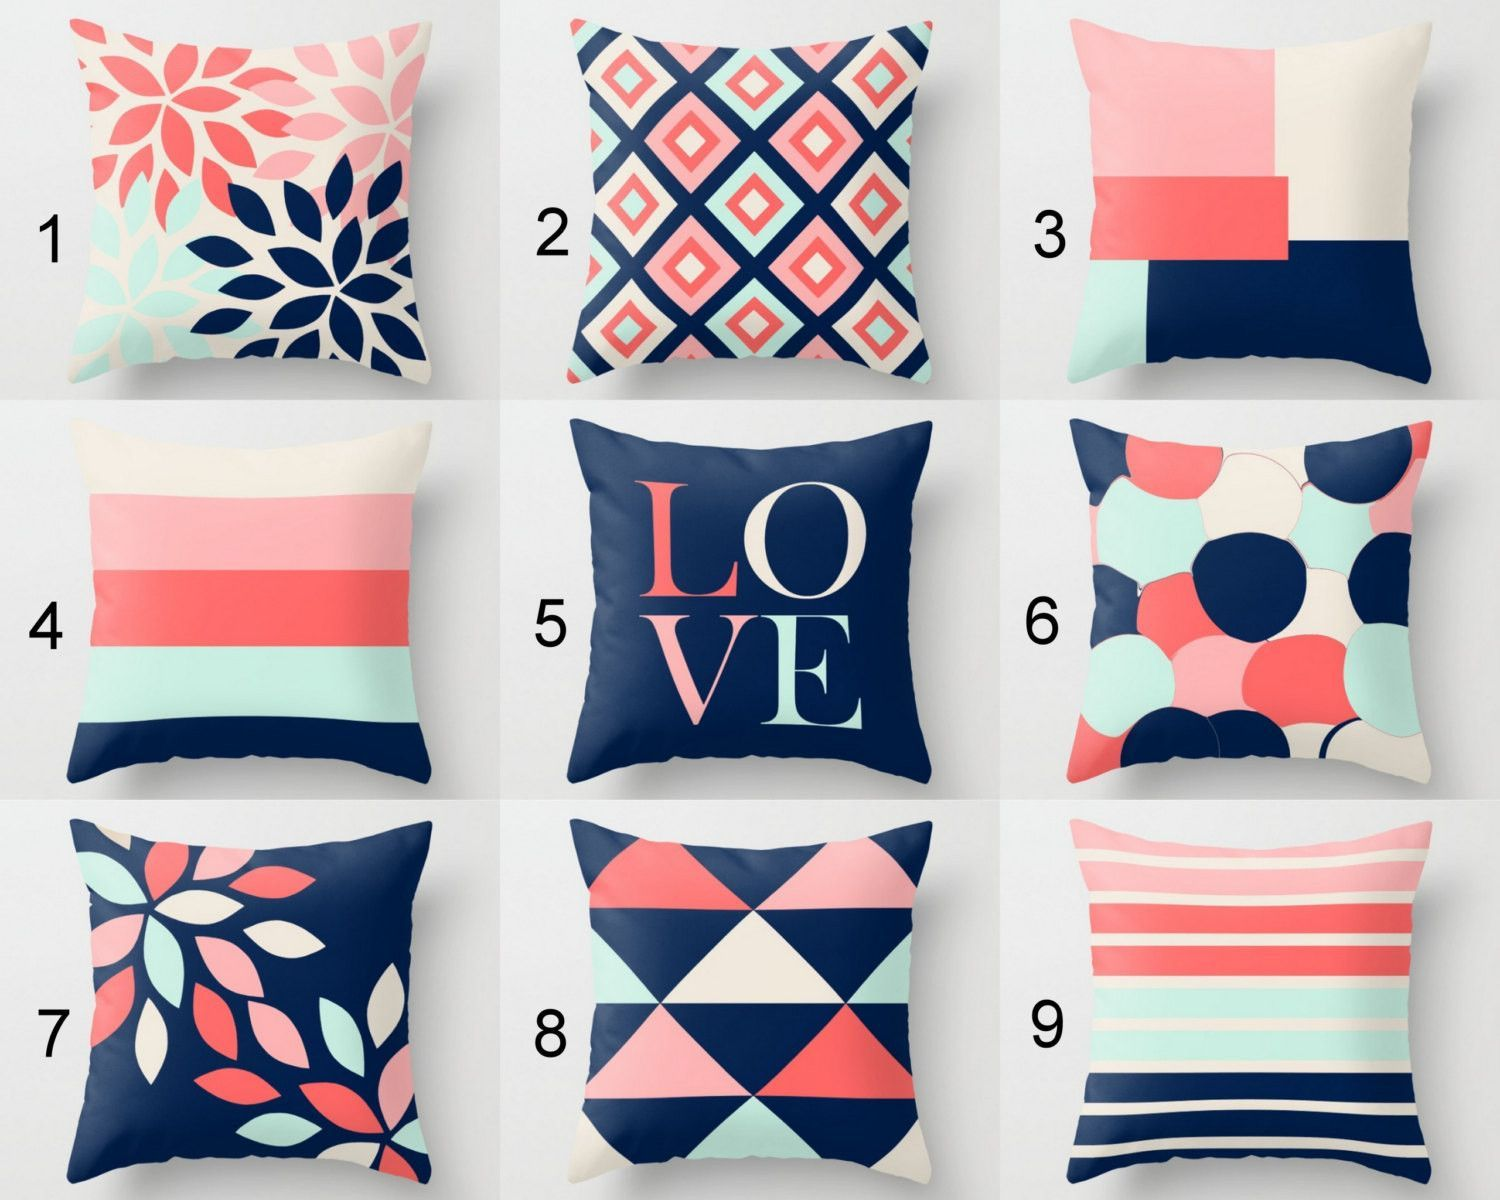 Throw Pillow Covers, Decorative Pillows, Cushion Cover, Geometric, Love,  Floral,